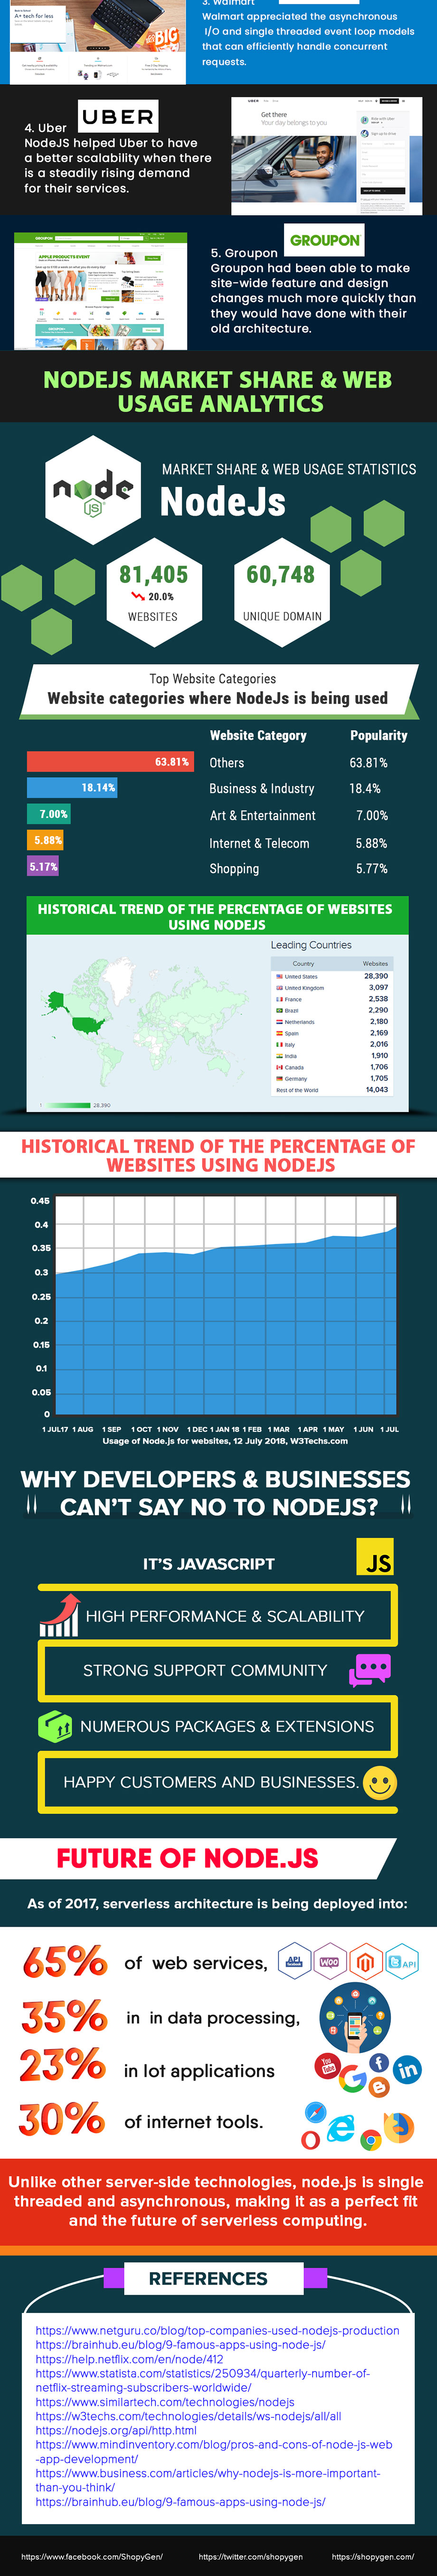 Why Node.js has been sublime for eCommerce website development & businesses - Infographic 2